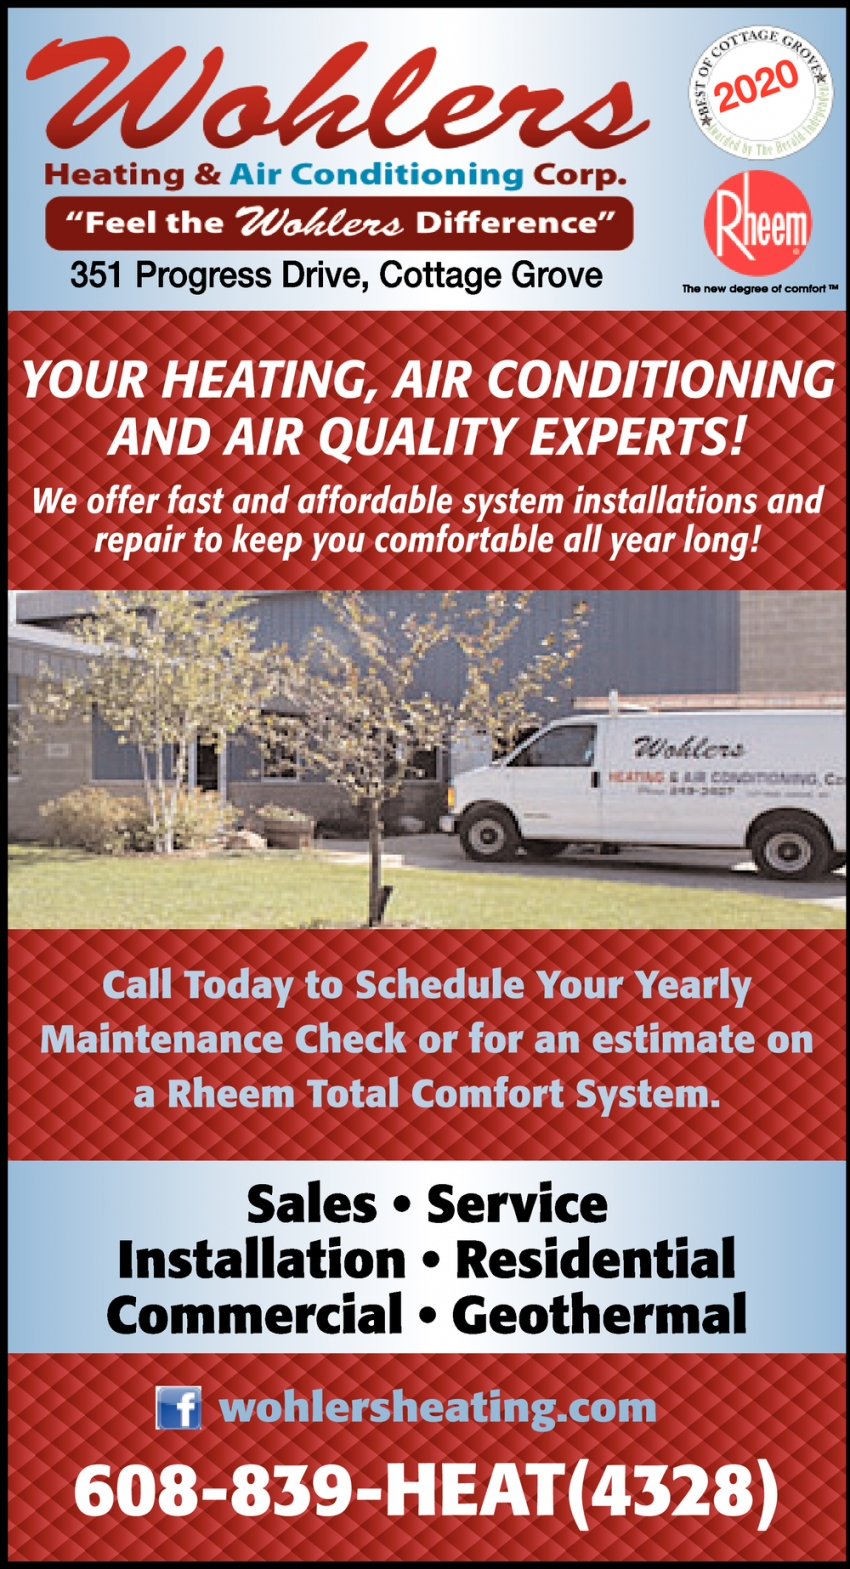 Your Heating, Air Conditioning and Air Quality Experts!